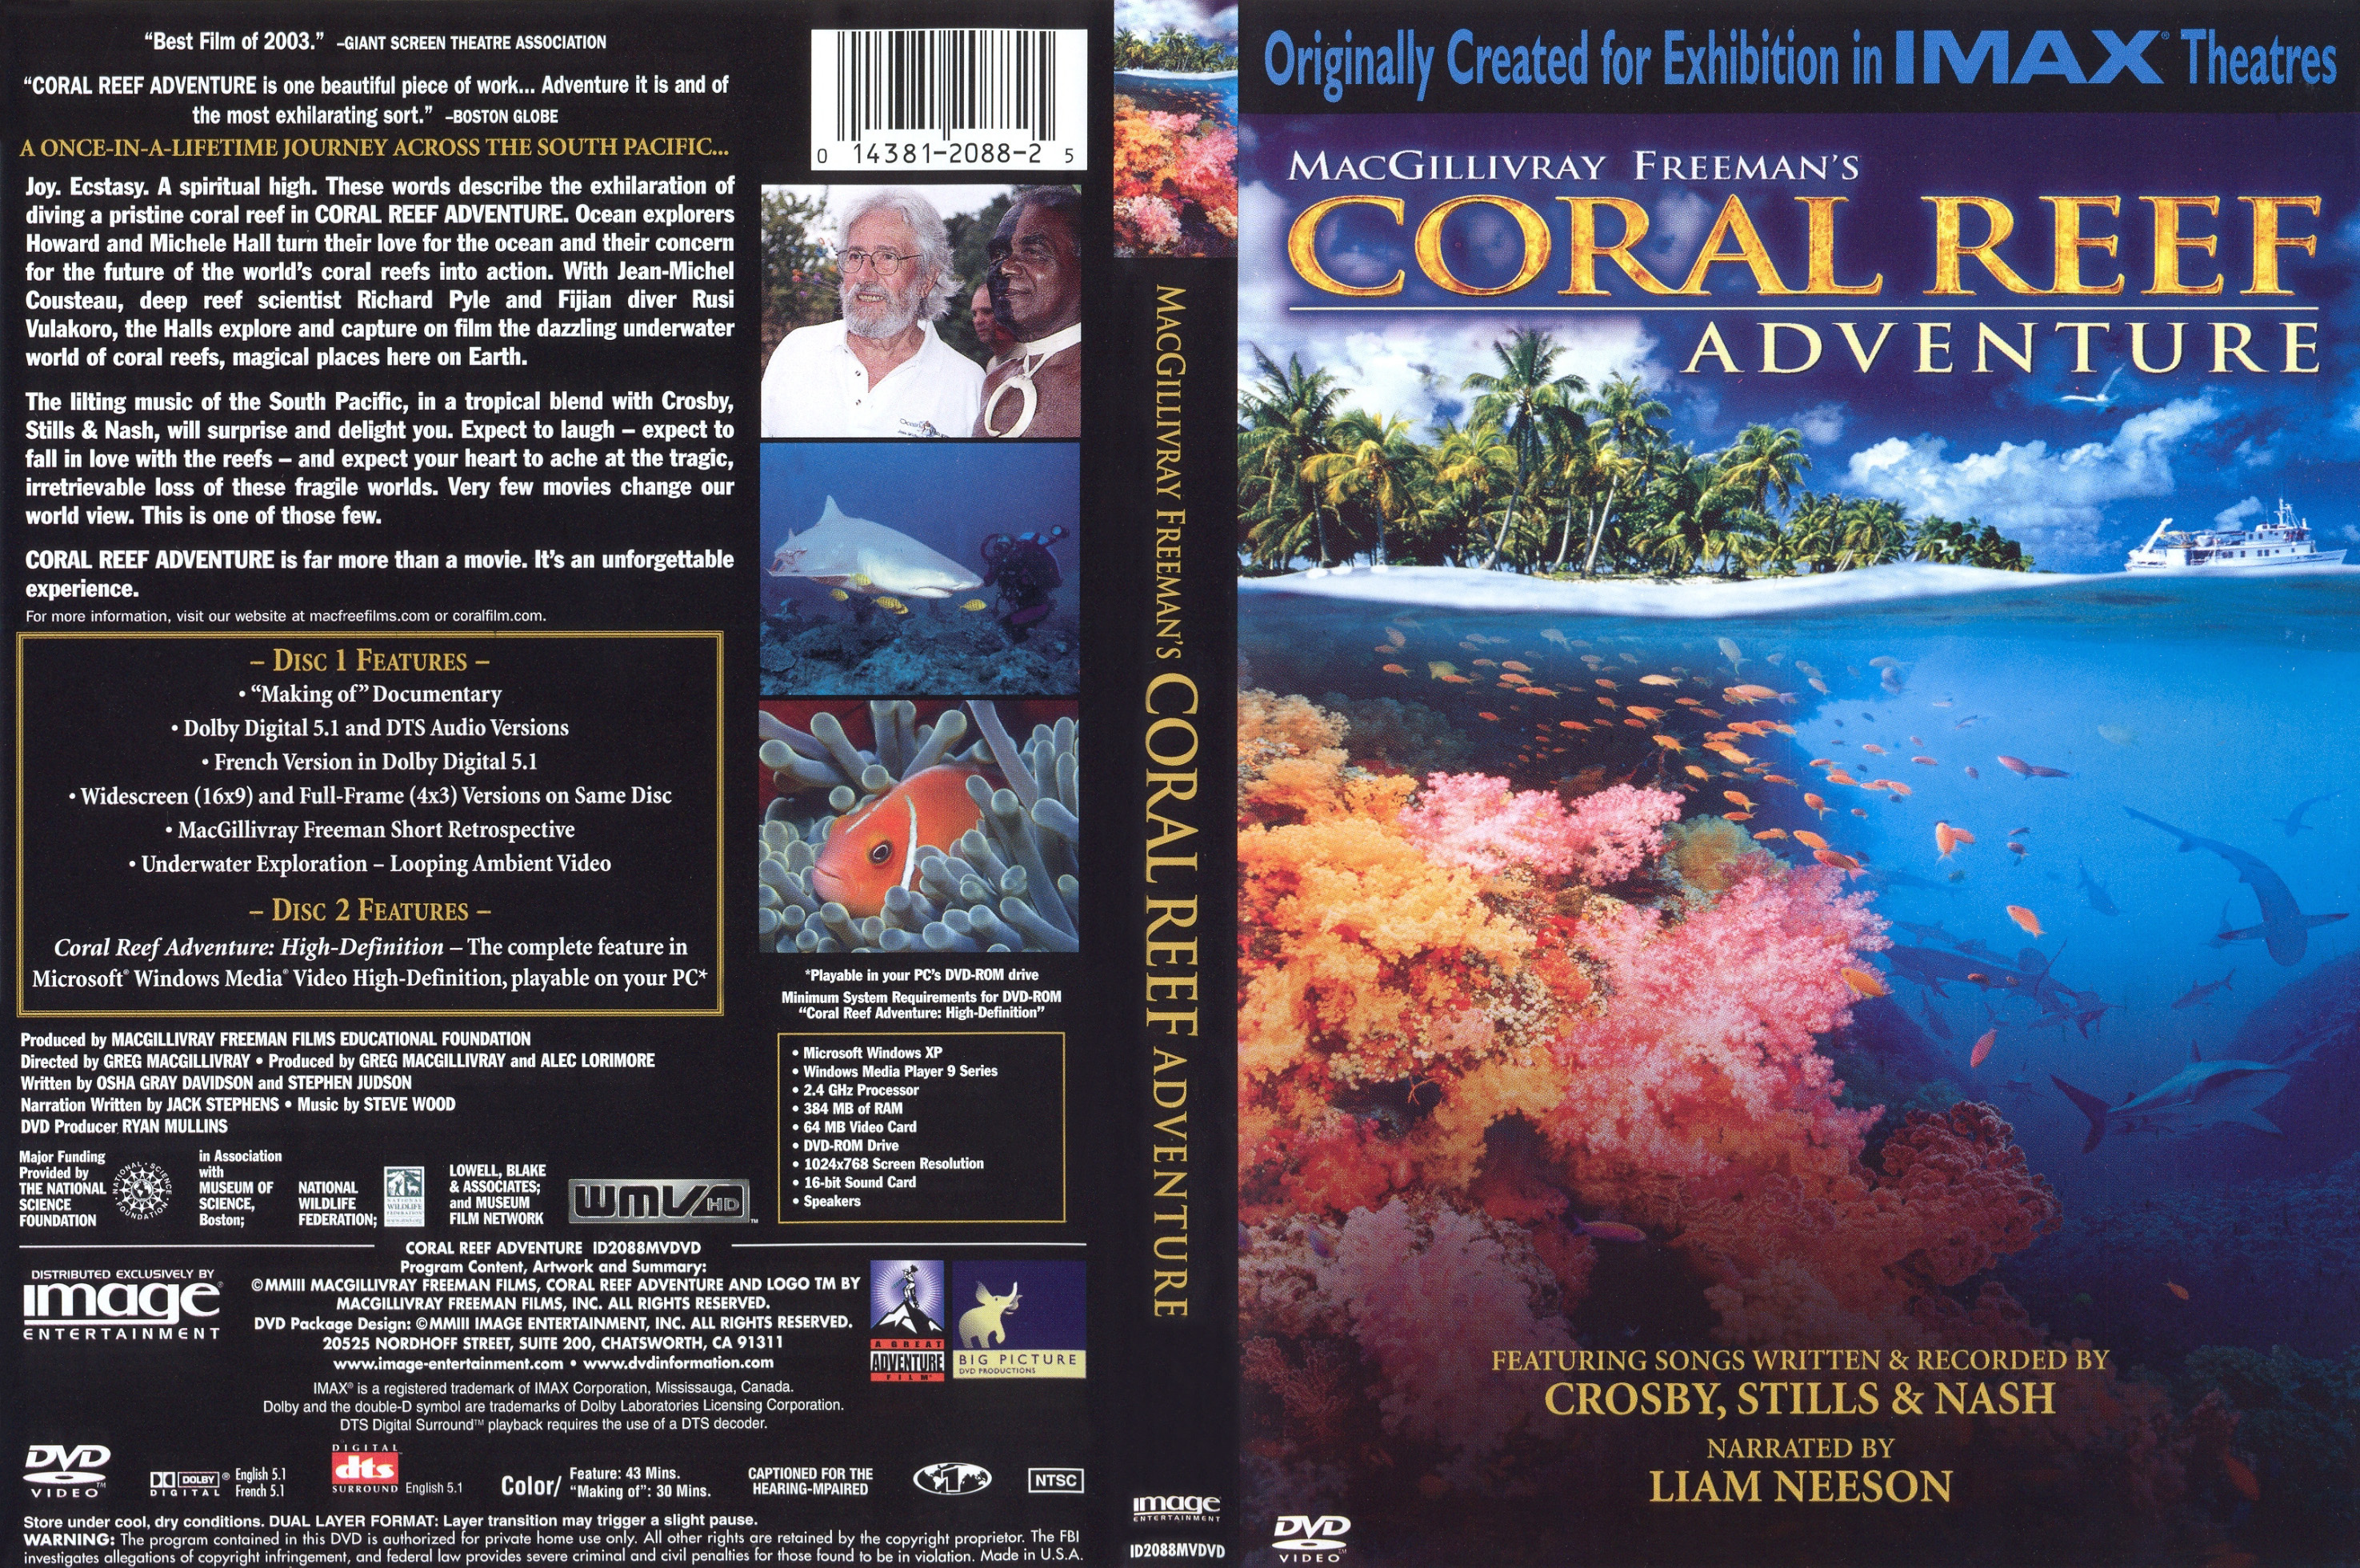 covers box sk coral reef adventure 2003 high quality dvd blueray movie